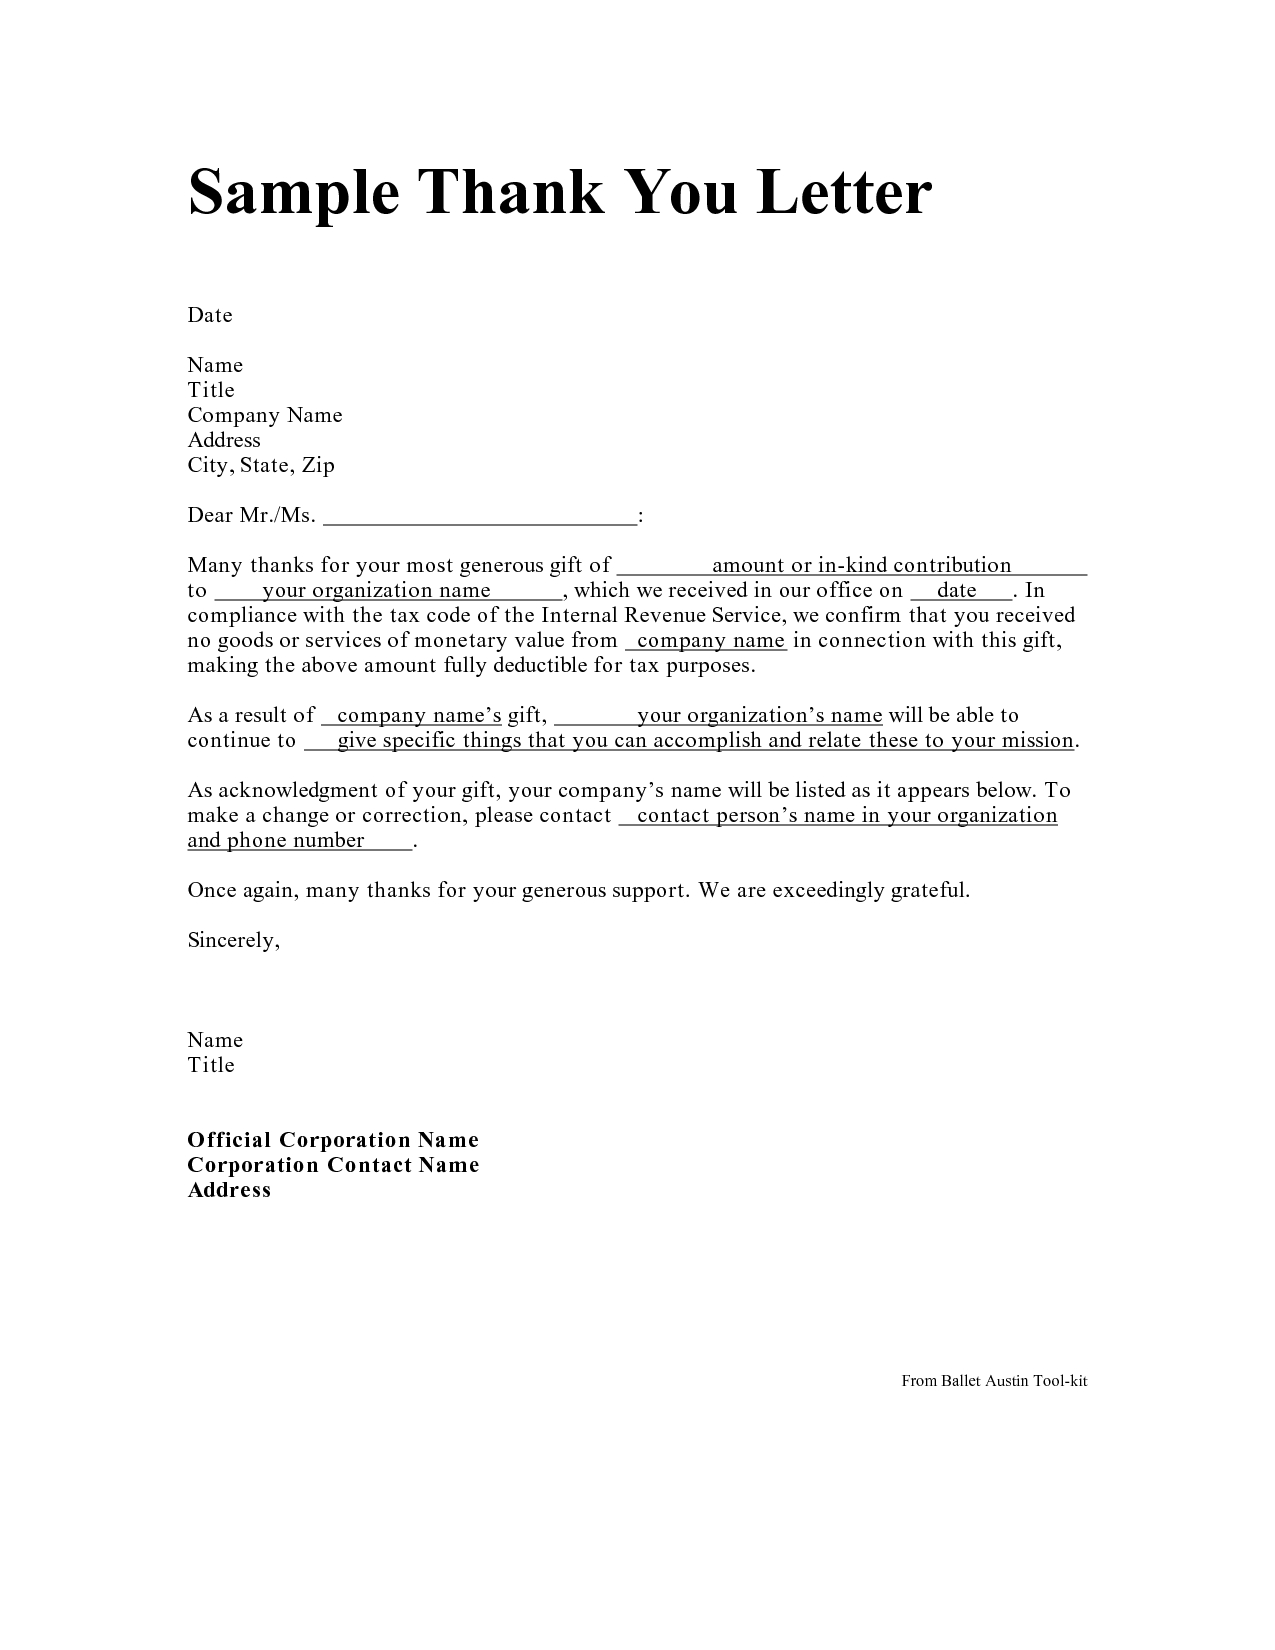 Template for Mission Trip Support Letter - Personal Thank You Letter Personal Thank You Letter Samples